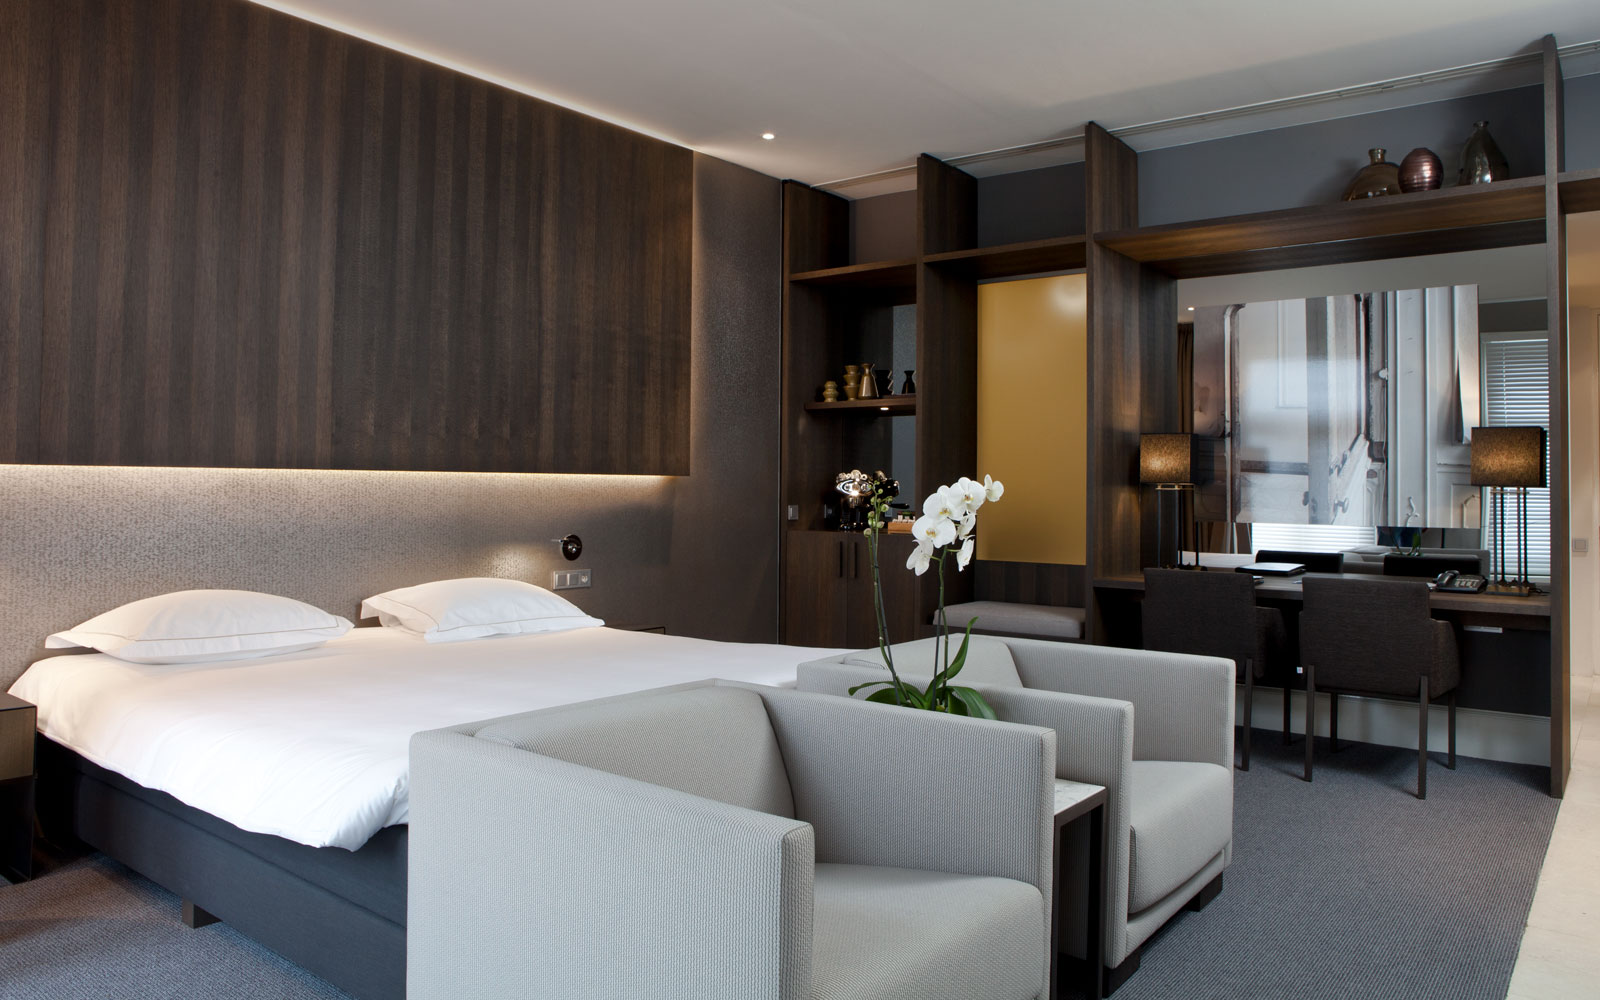 Hotelkamer, Nilson Beds, The Dylan Hotel Amsterdam | Remy Meijers